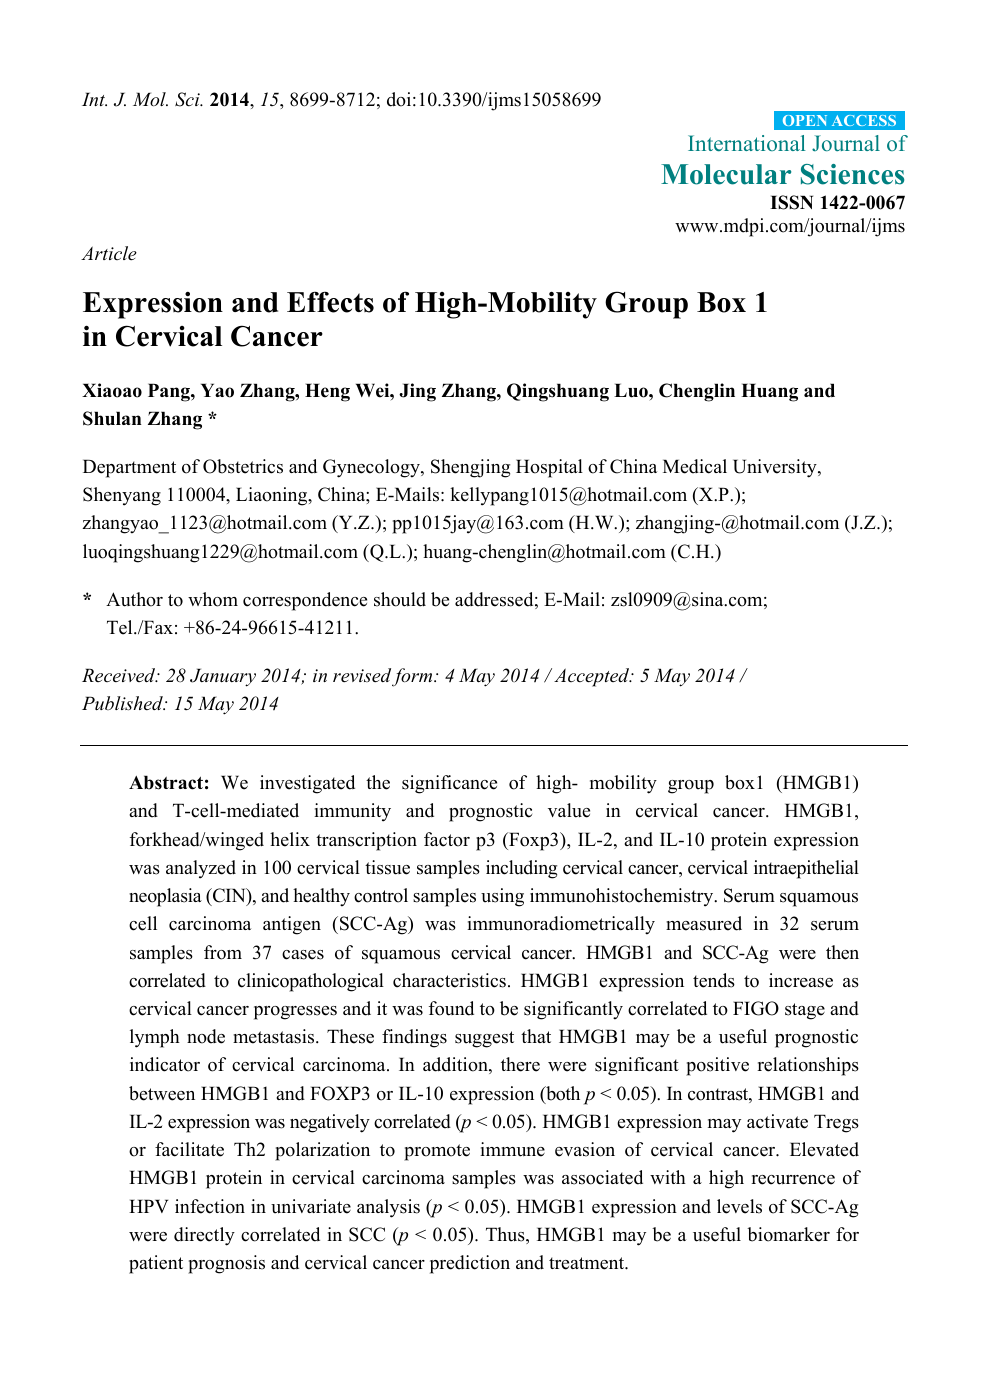 Expression and Effects of High-Mobility Group Box 1 in Cervical